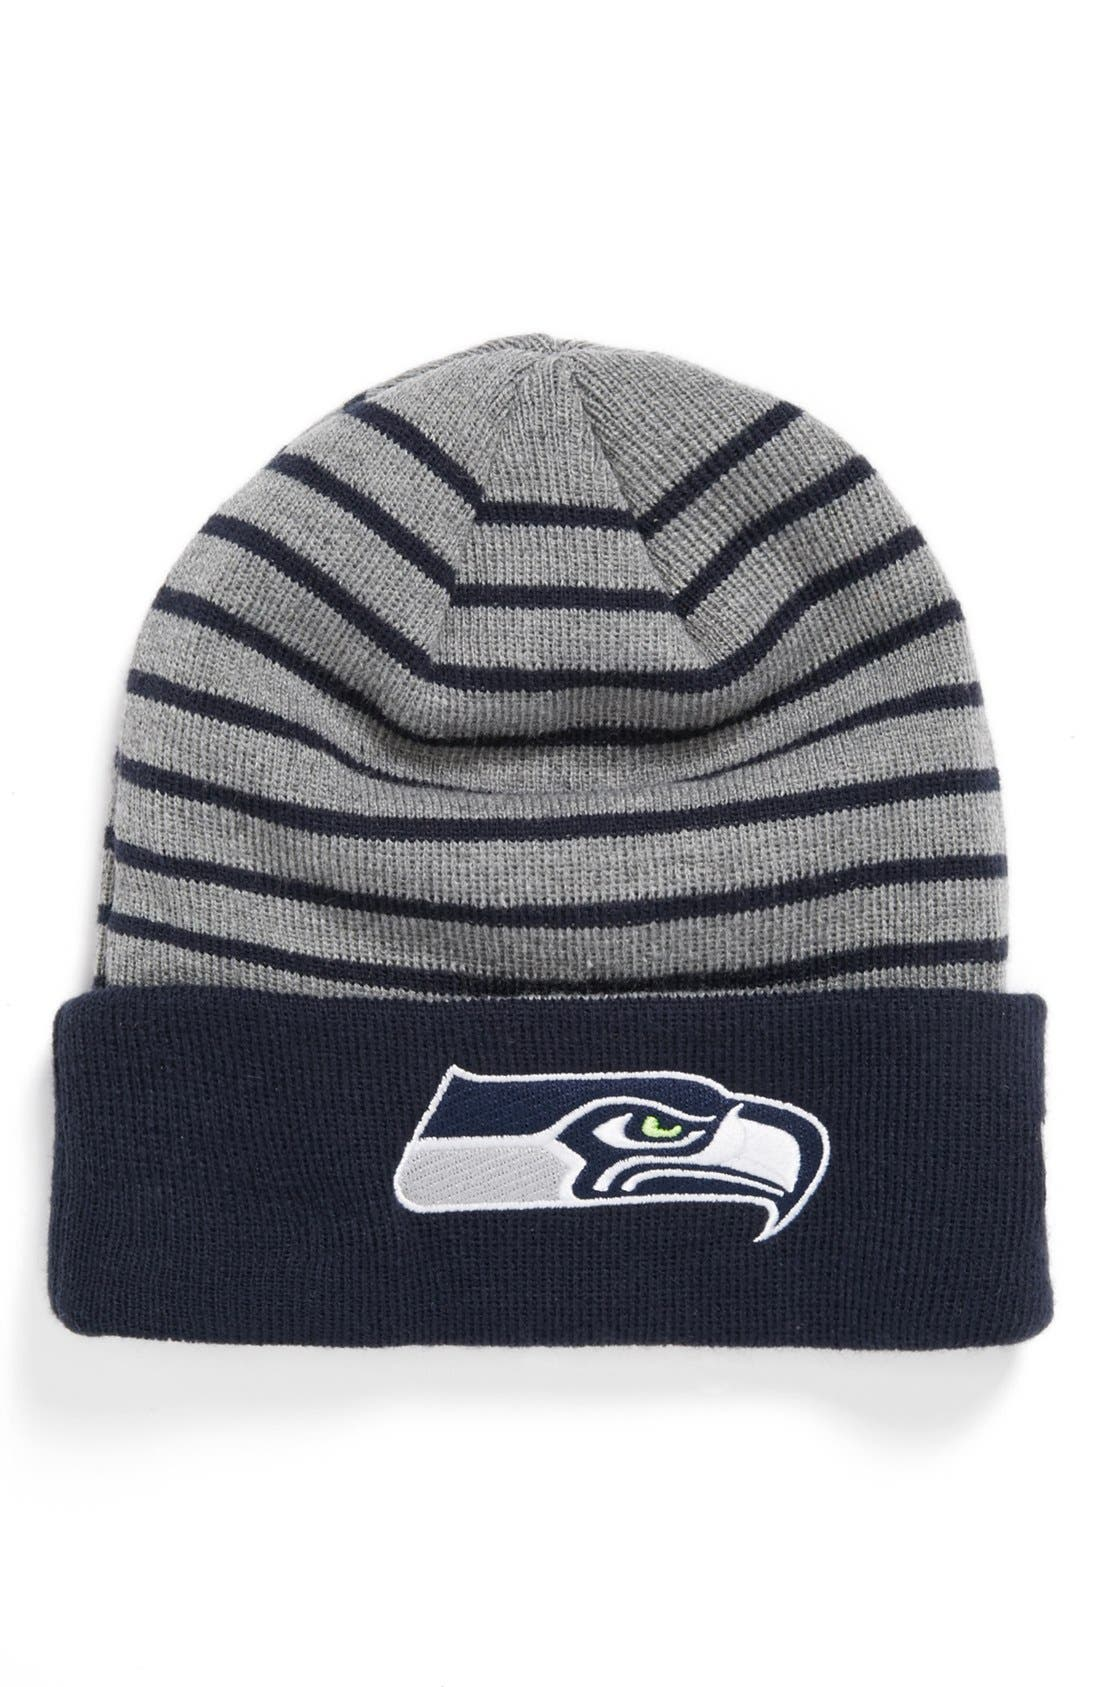 Alternate Image 1 Selected - New Era Cap 'H Stripe - Seattle Seahawks' Knit Cap